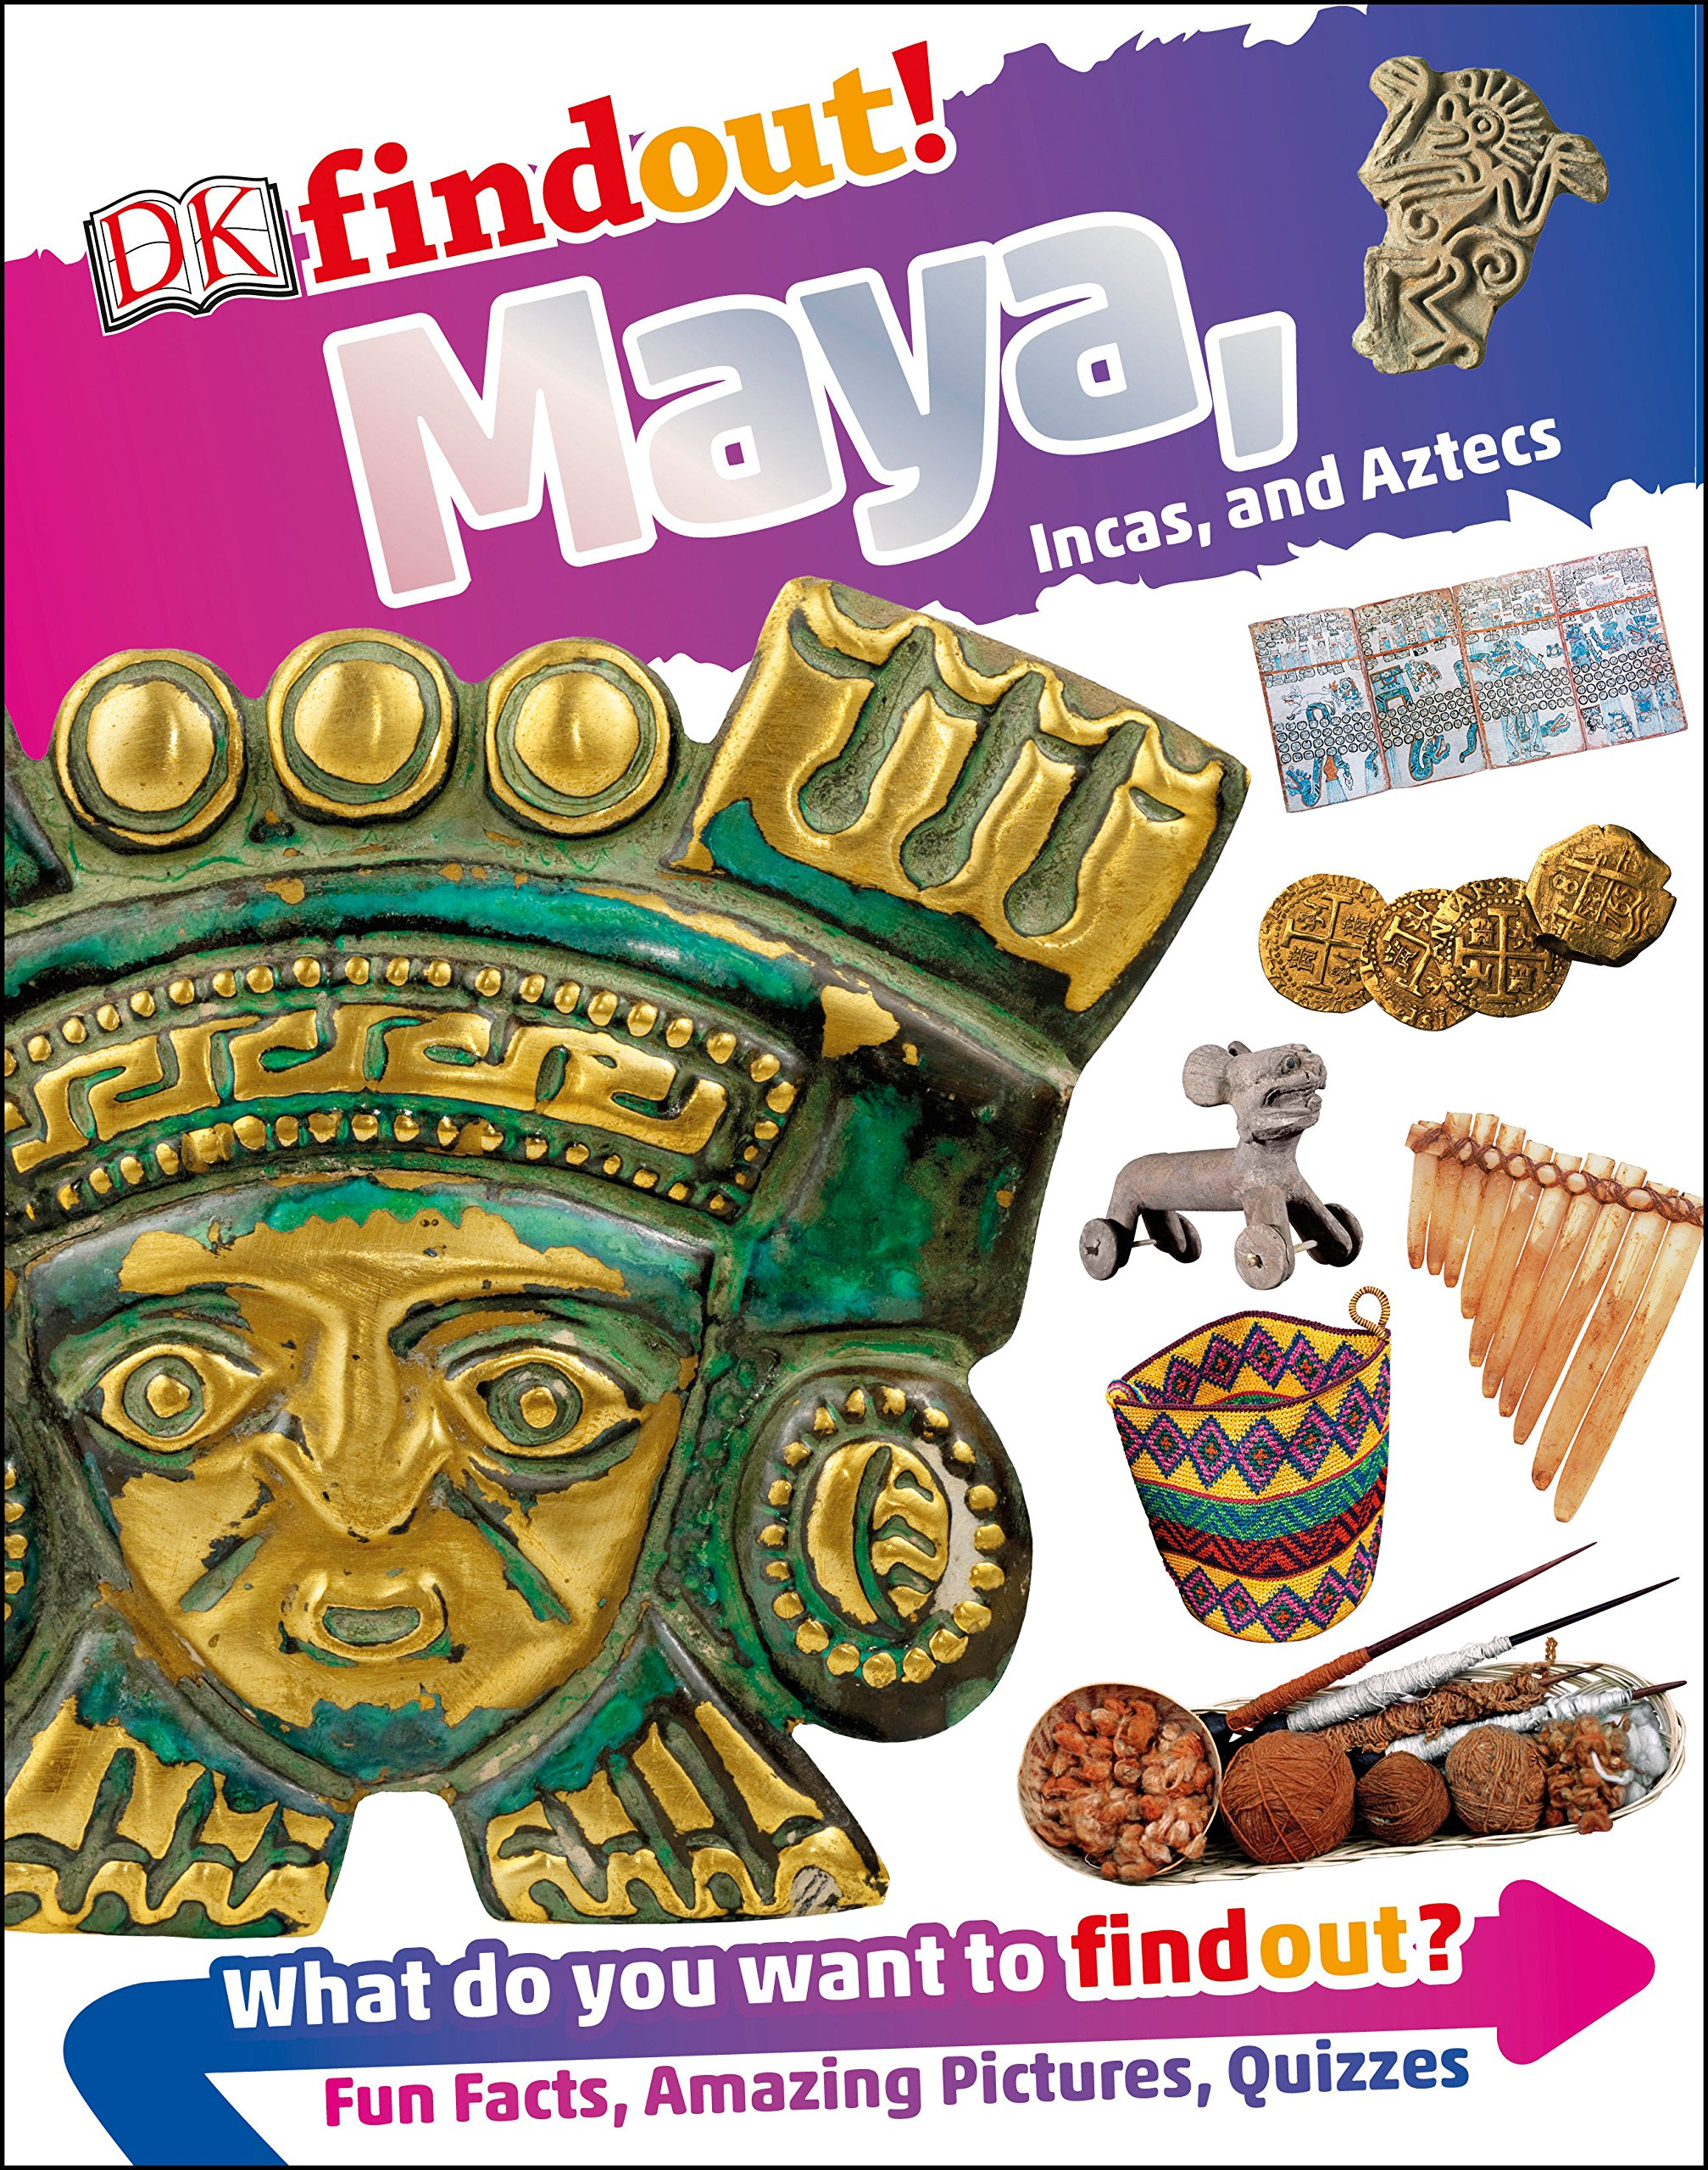 Dkfindout! Maya Incas and Aztecs